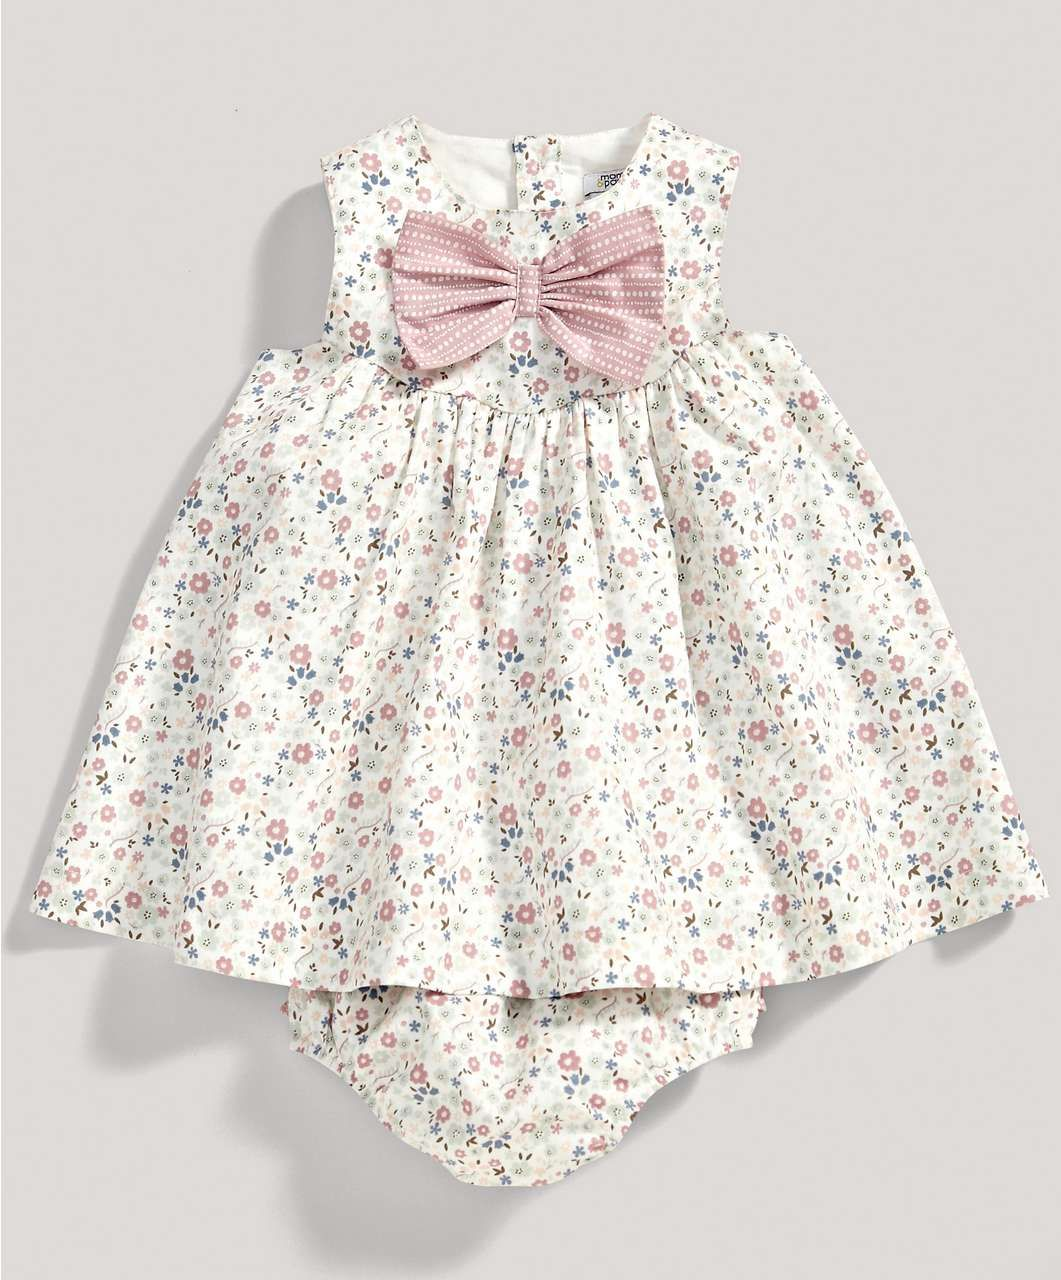 447fb7e9ce Girls Floral Bow Dress and Knickers Set - New Arrivals - Mamas & Papas